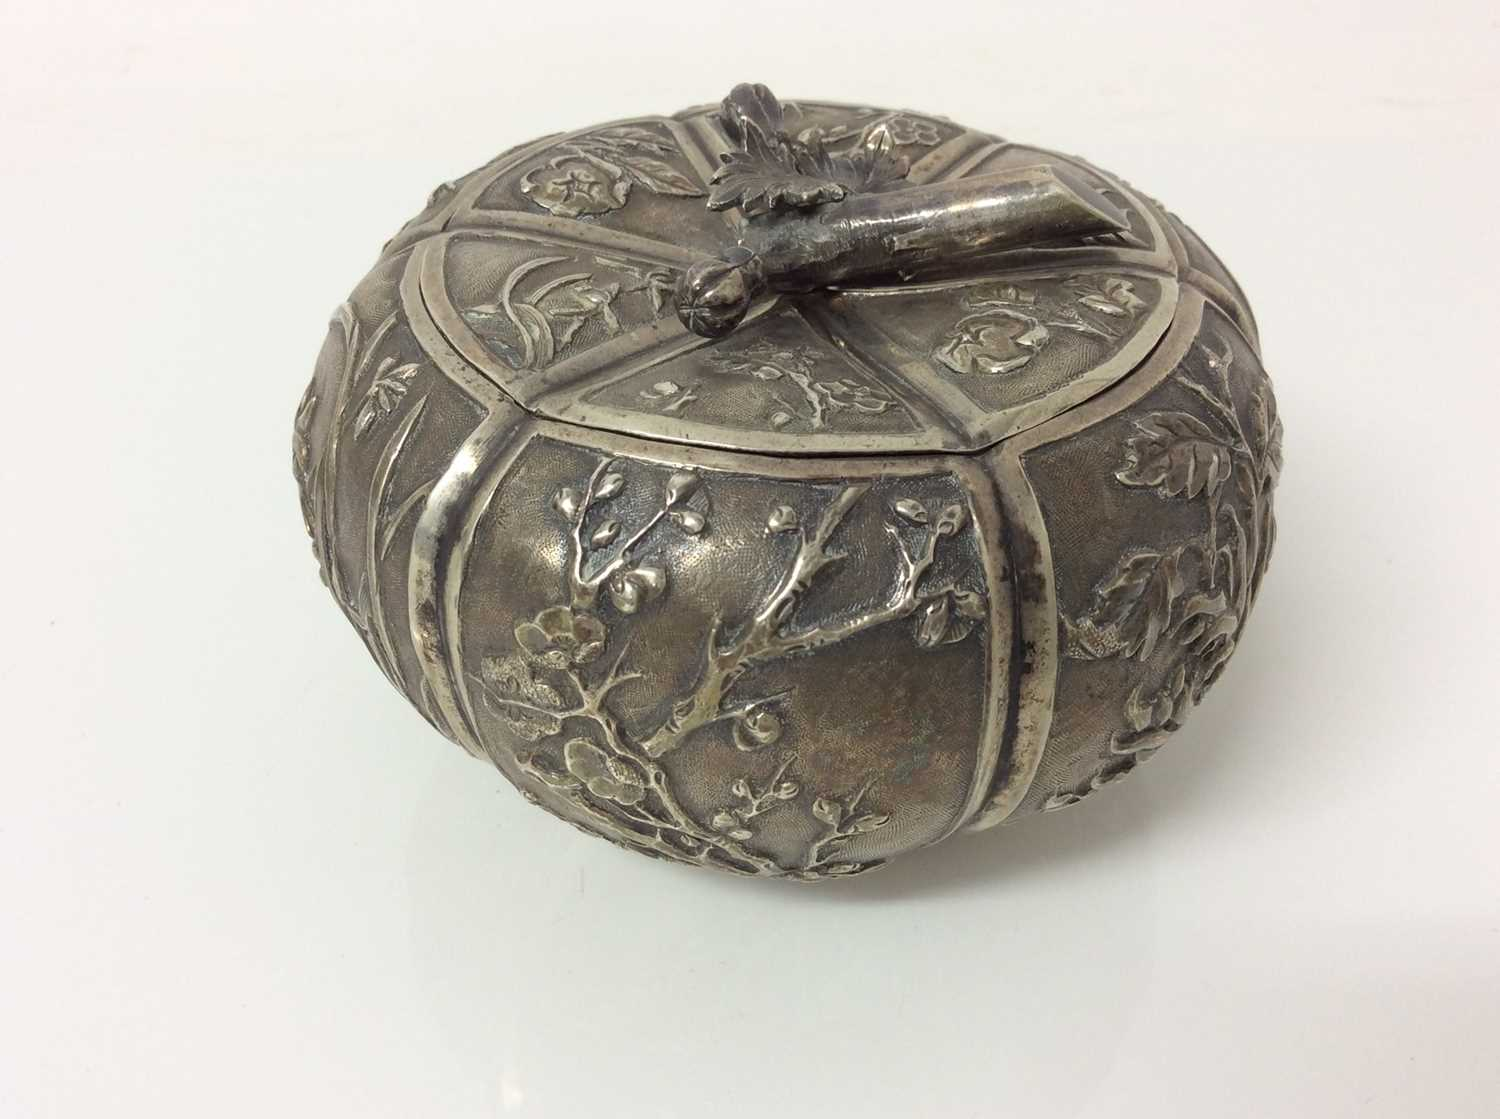 Late 19th/early 20th century Chinese silver lidded pot - Image 6 of 10